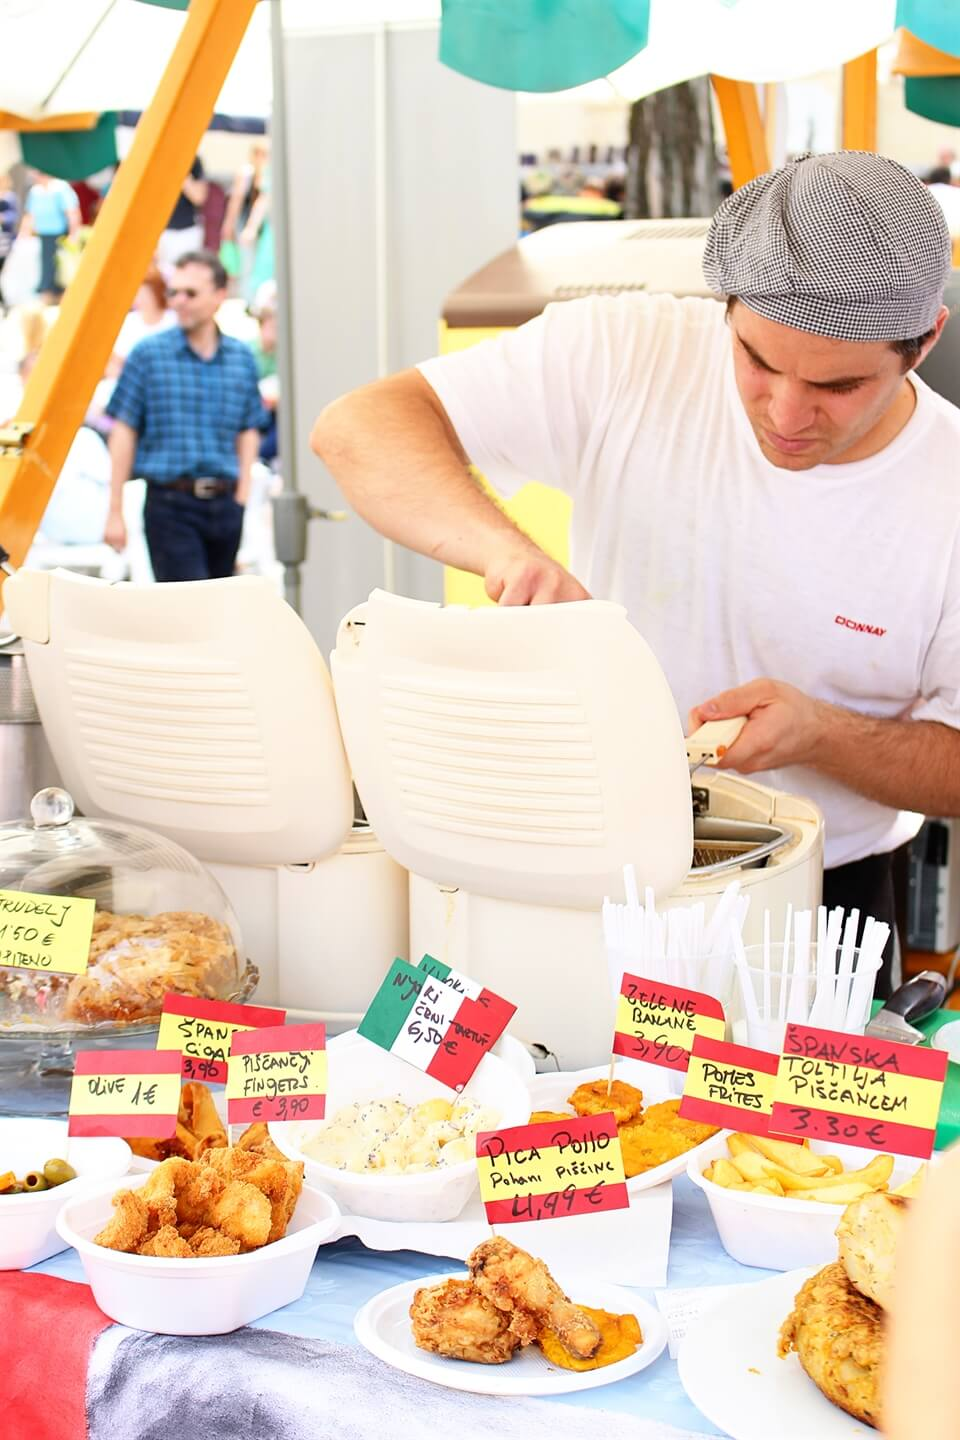 Travel: Ljubljana\'s Open Kitchen Food Market : As the Bird flies ...